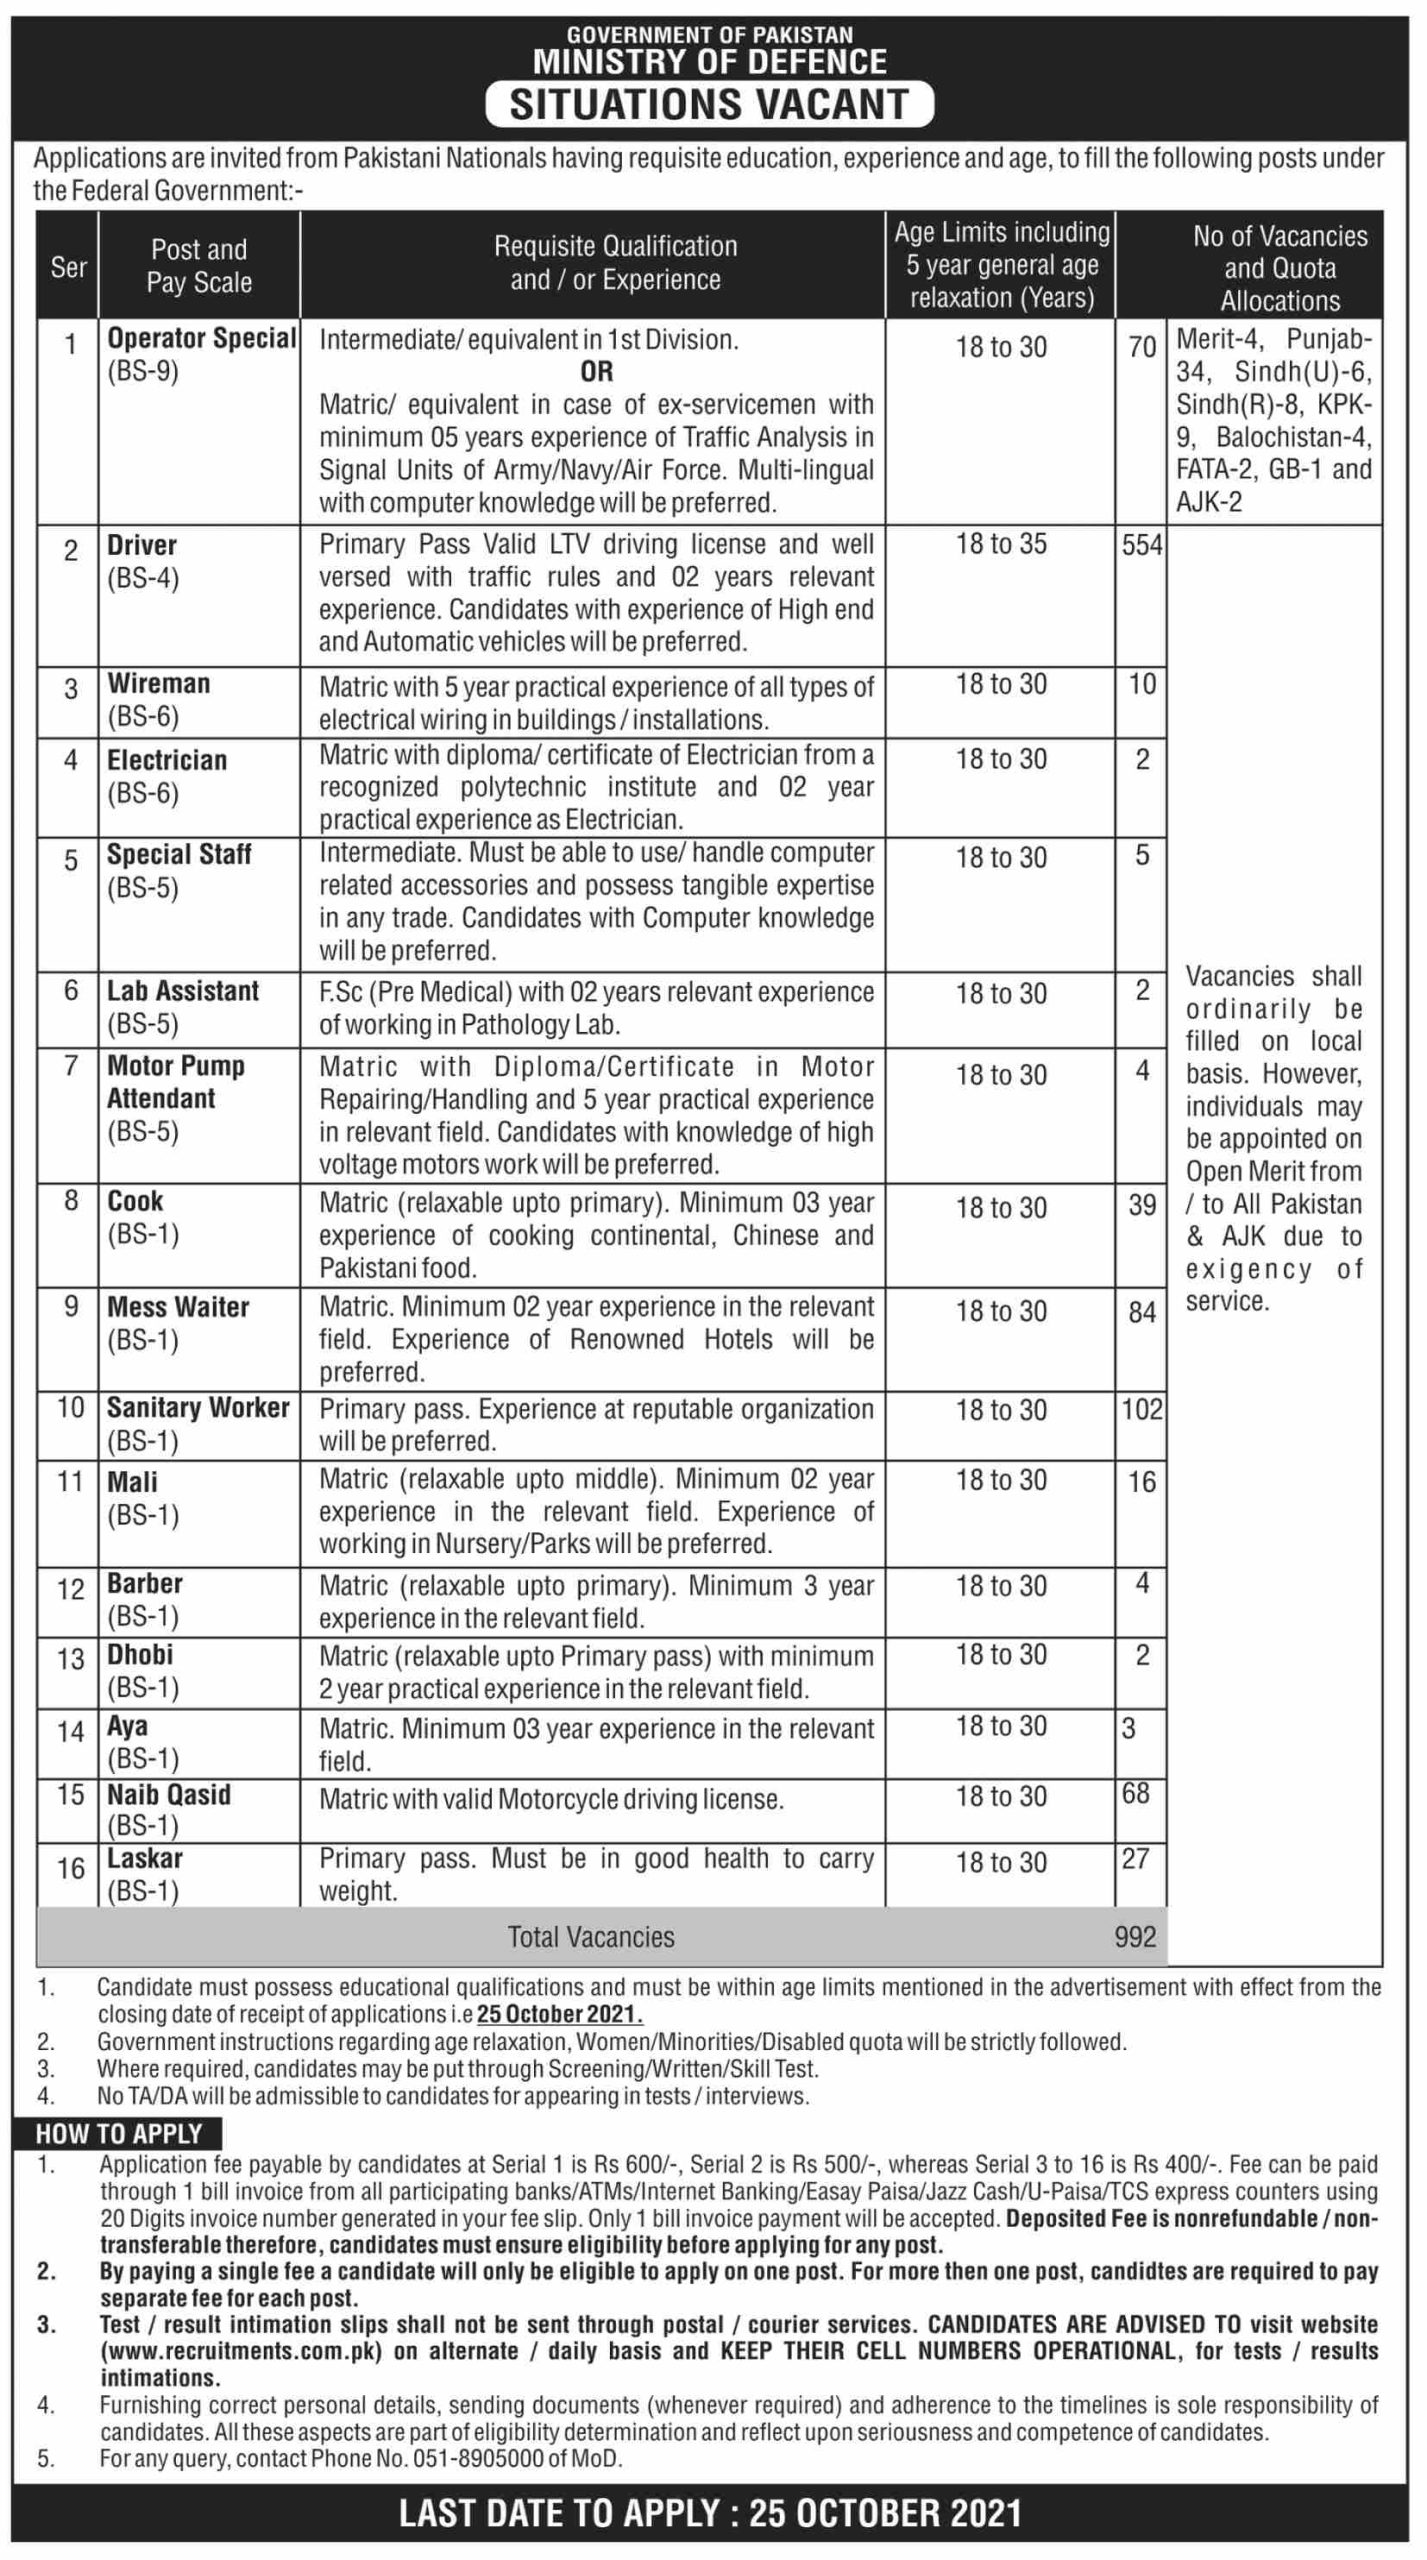 Government of Pakistan - Ministry of Defence Jobs October 2021